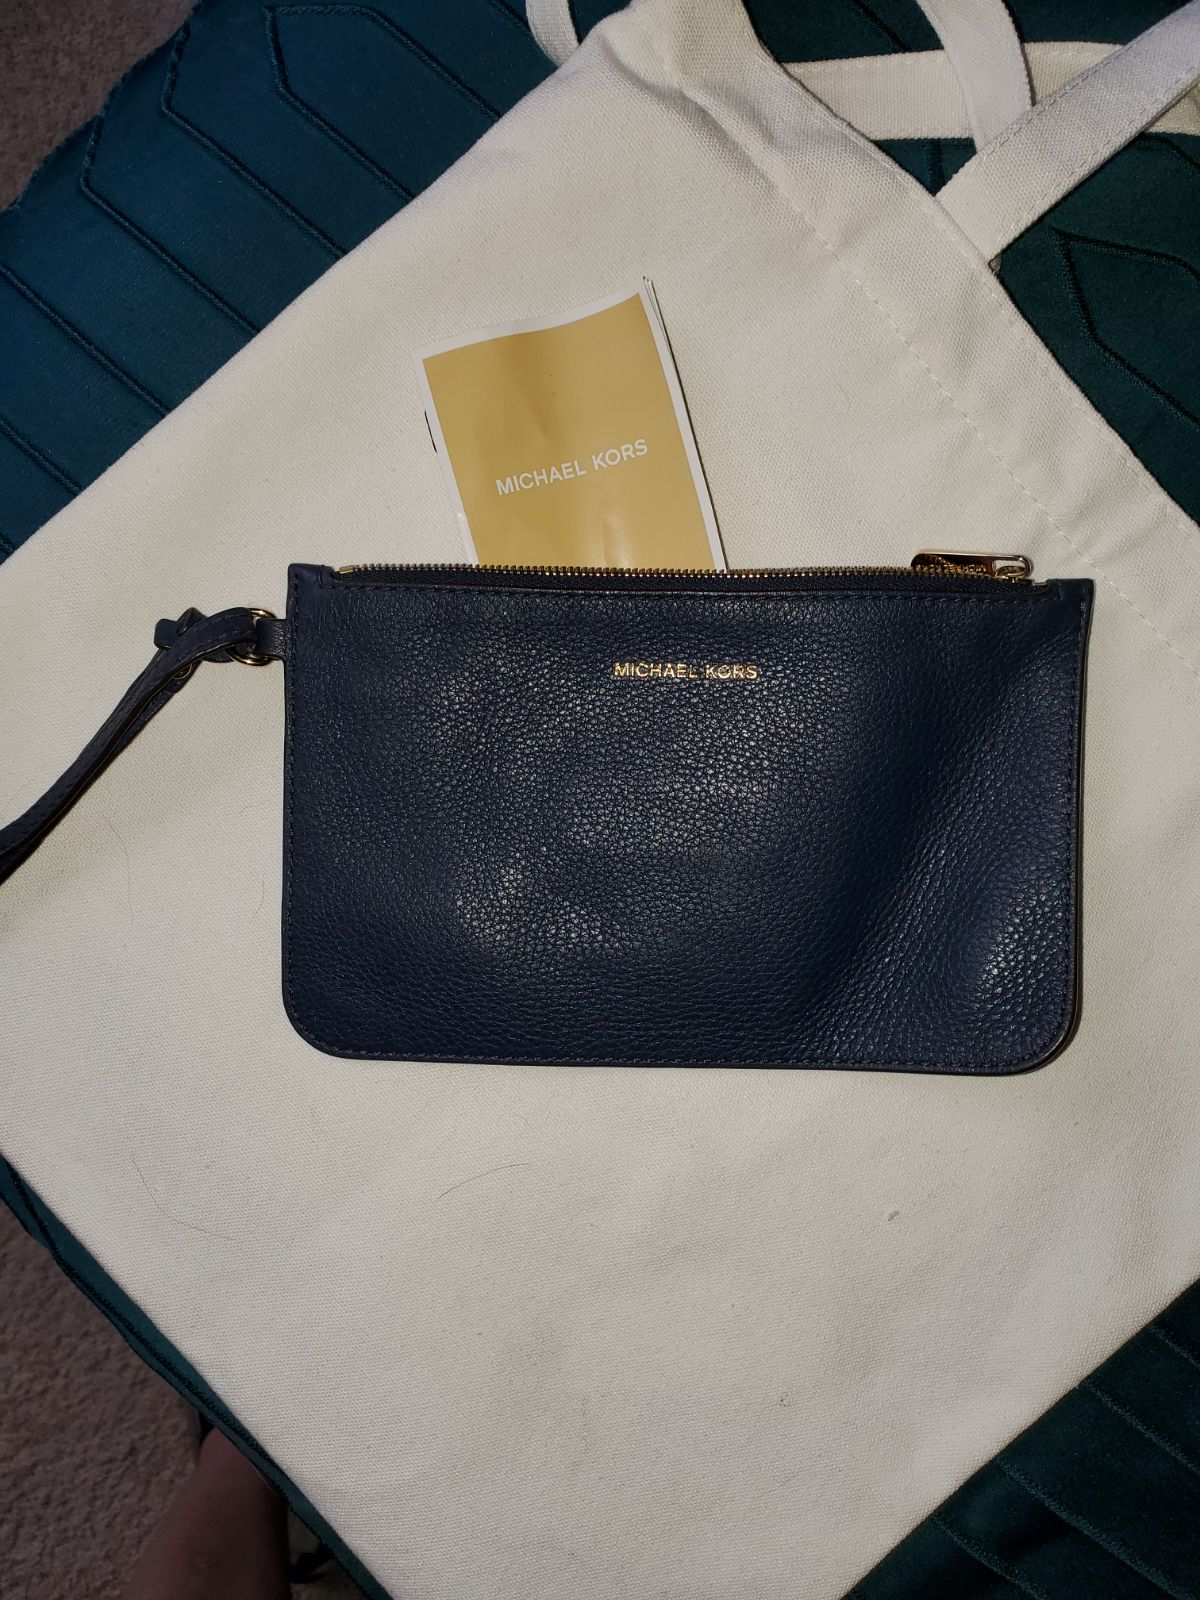 Michael Kors wristlet and wallet